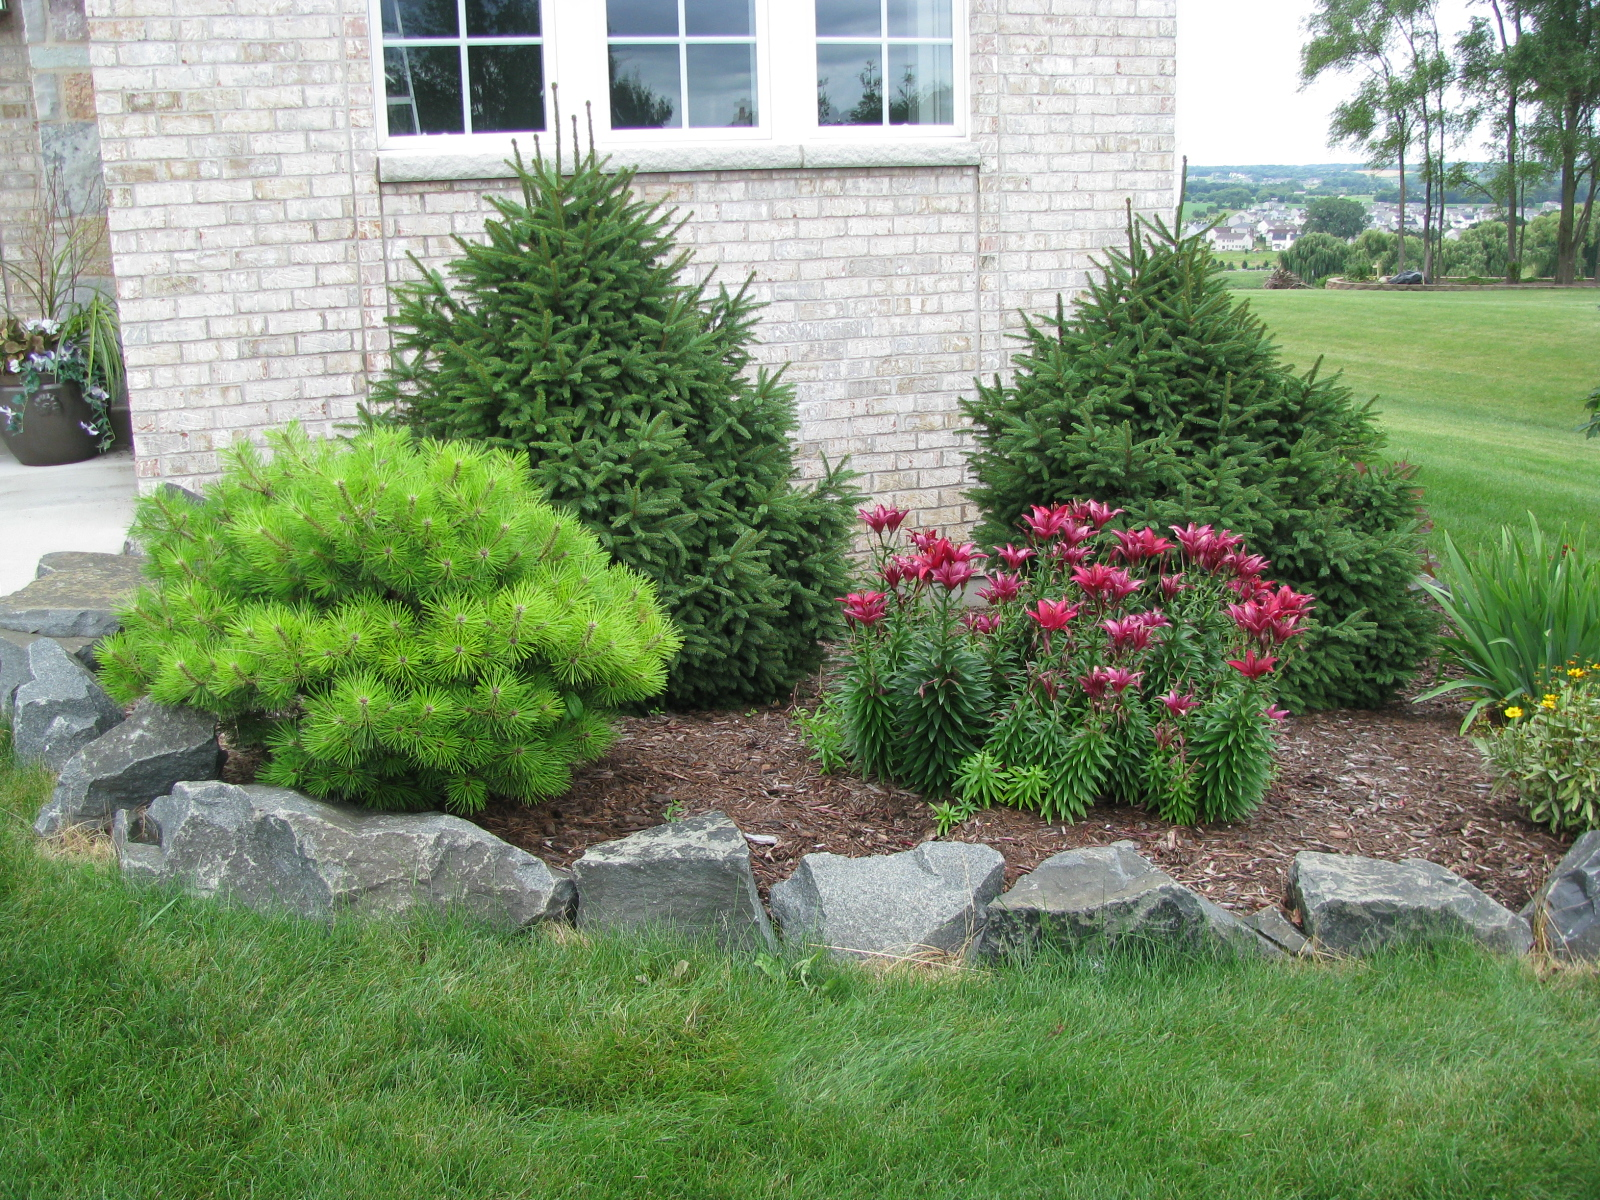 Mchenry county mulch gravel stone a yard Pictures of landscaping ideas